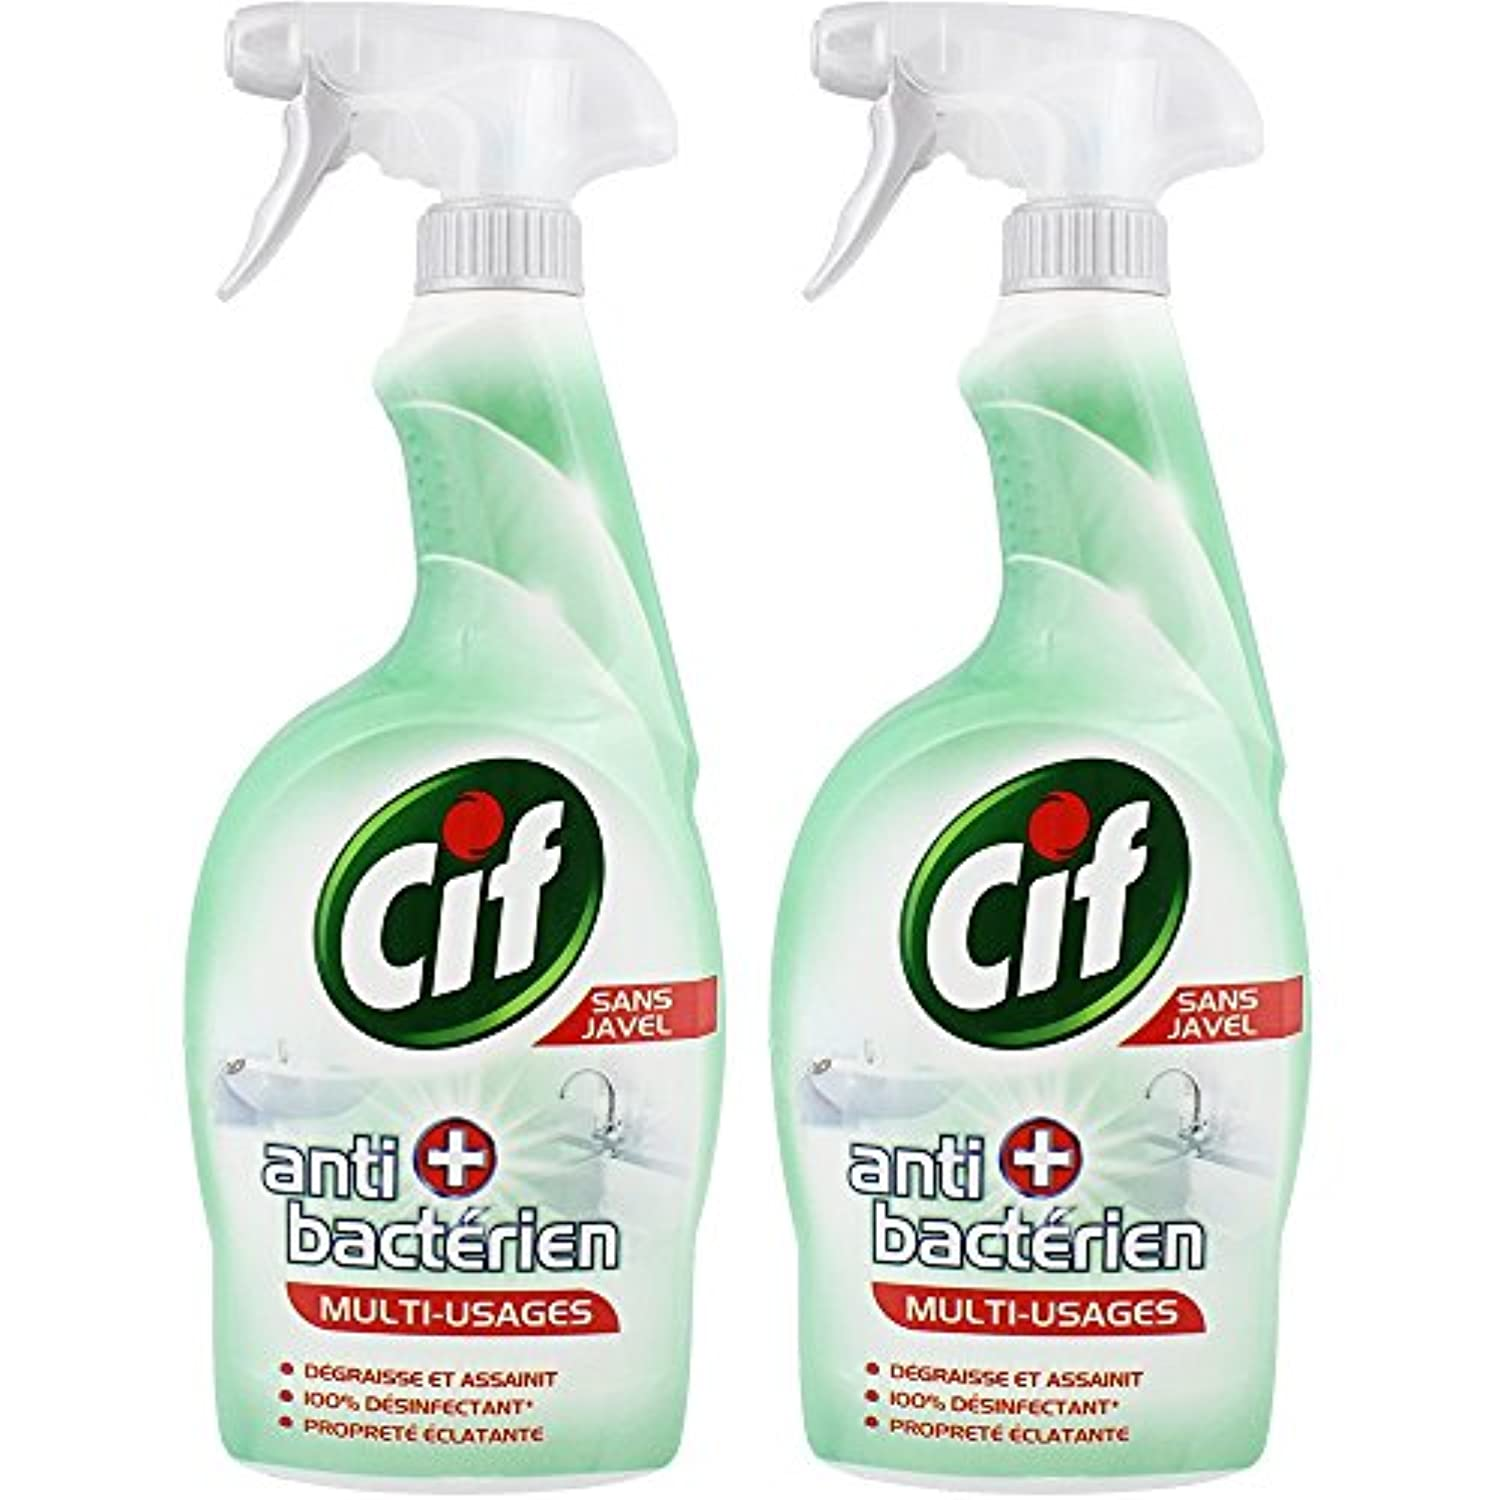 Cif Pistolet Spray Nettoyant Antibact Rien Sans Javel 750ml Lot De 2